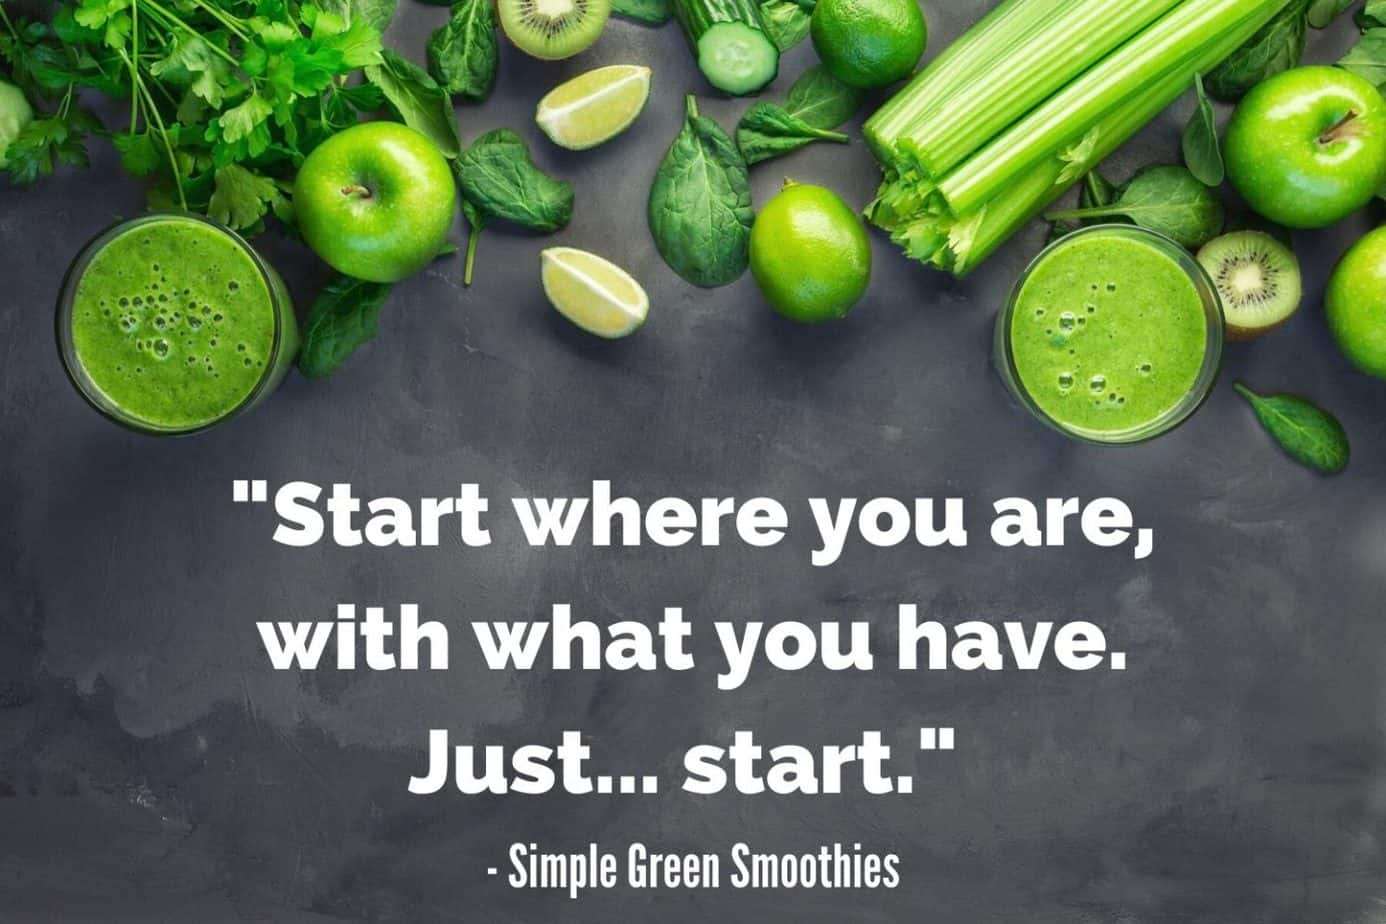 clean eating blog - simple green smoothies